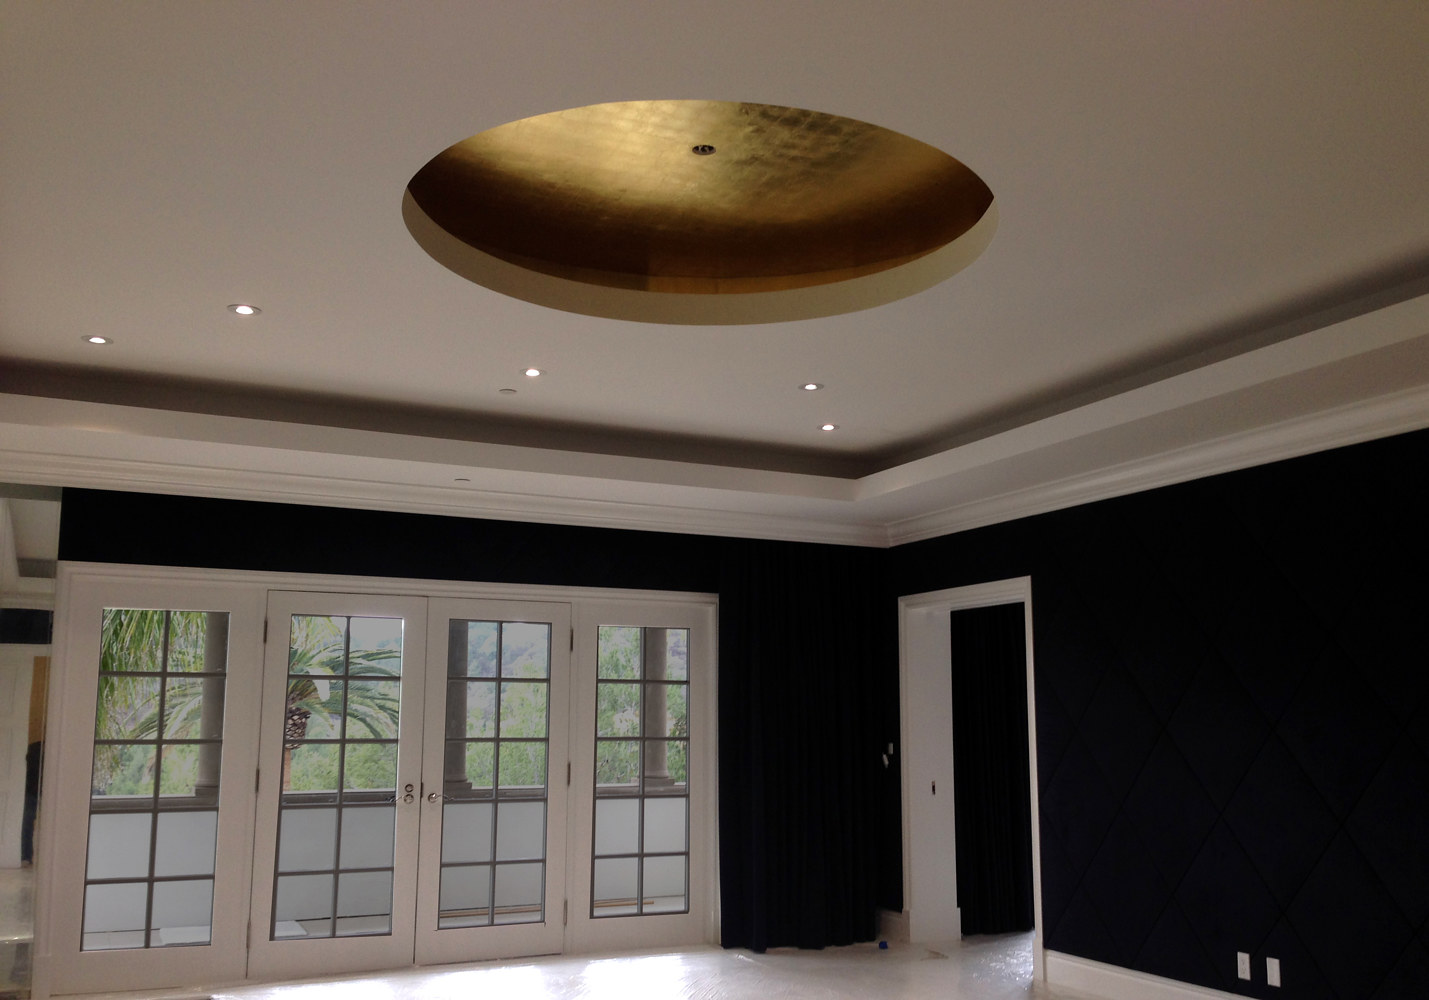 Beverly Park 24K Gold Guest room Insert Ceiling by Robert Milling